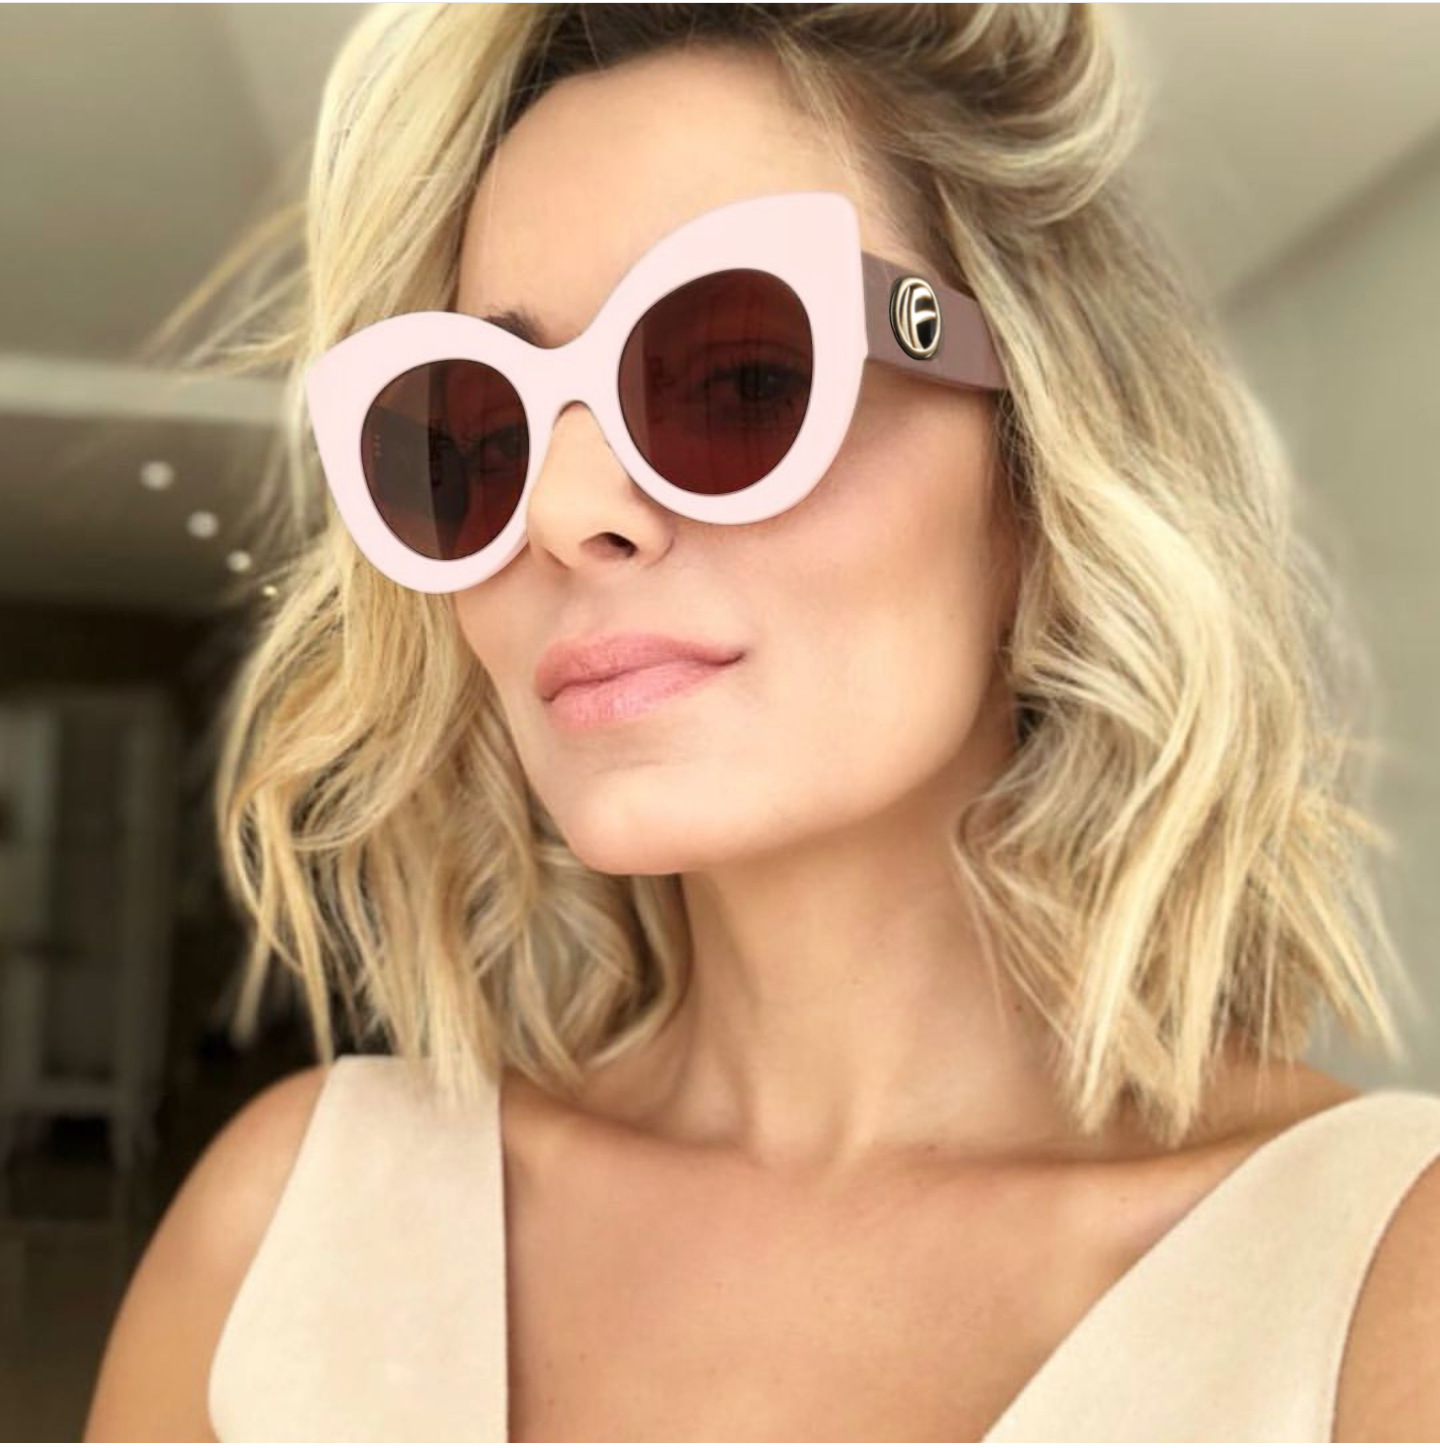 FASHION LINE 307 57-14 130 Made in Italy Original Vintage Frame from Sunglasses Woman Classic Elegente Moda 7080 Styler For Summer 2019